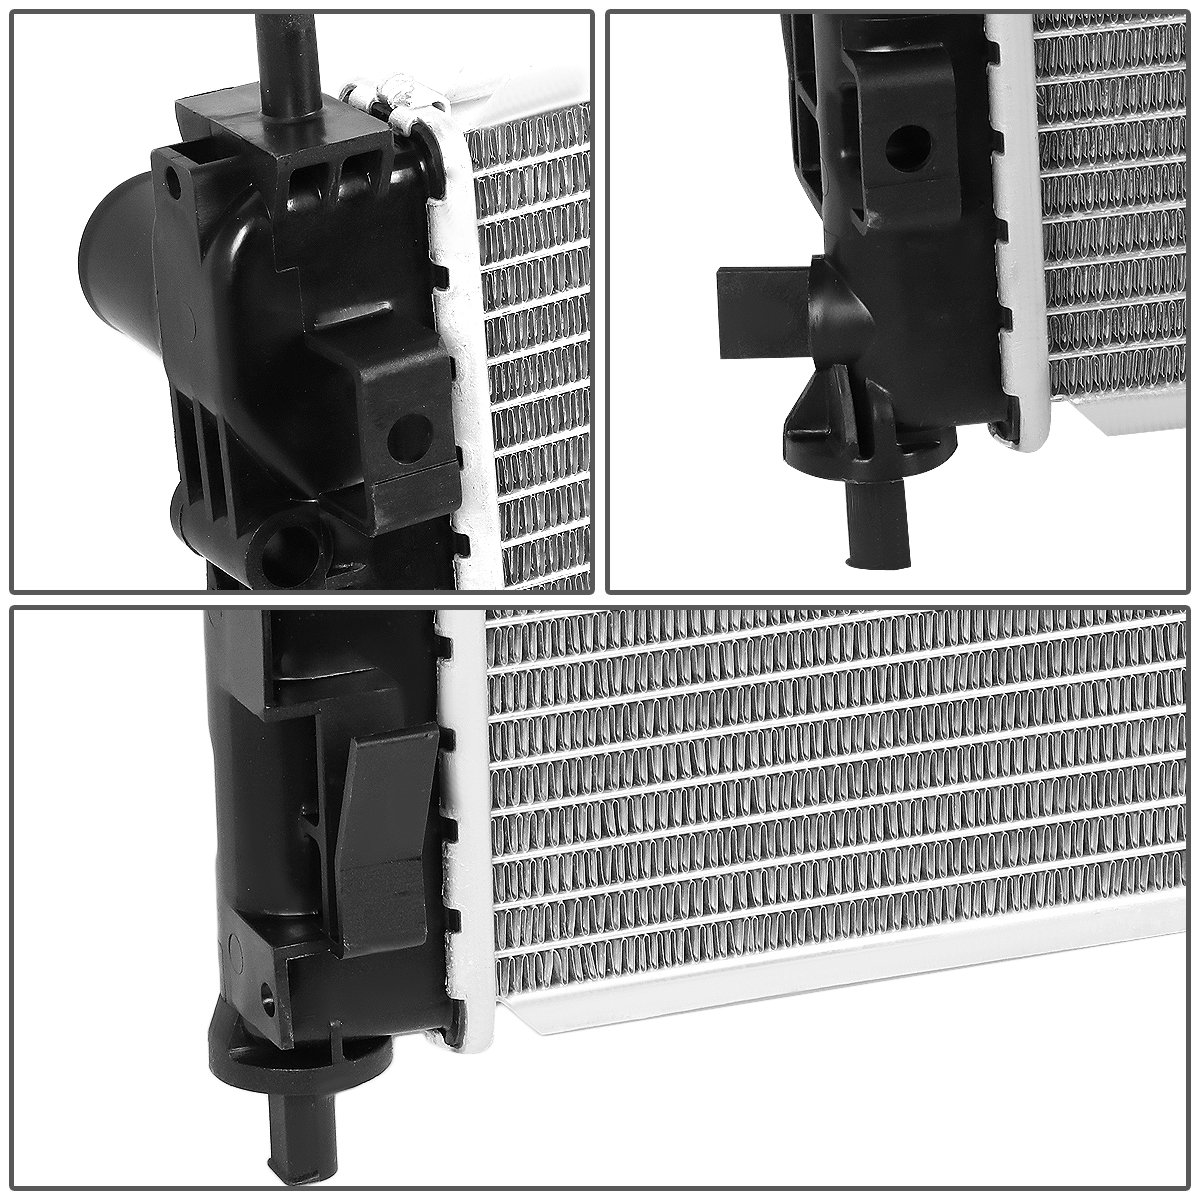 2951 Factory Style Aluminum Cooling Radiator for 07-16 Dodge Caliber//Avenger//Jeep Compass//Patriot//Chrysler 200 AT//MT